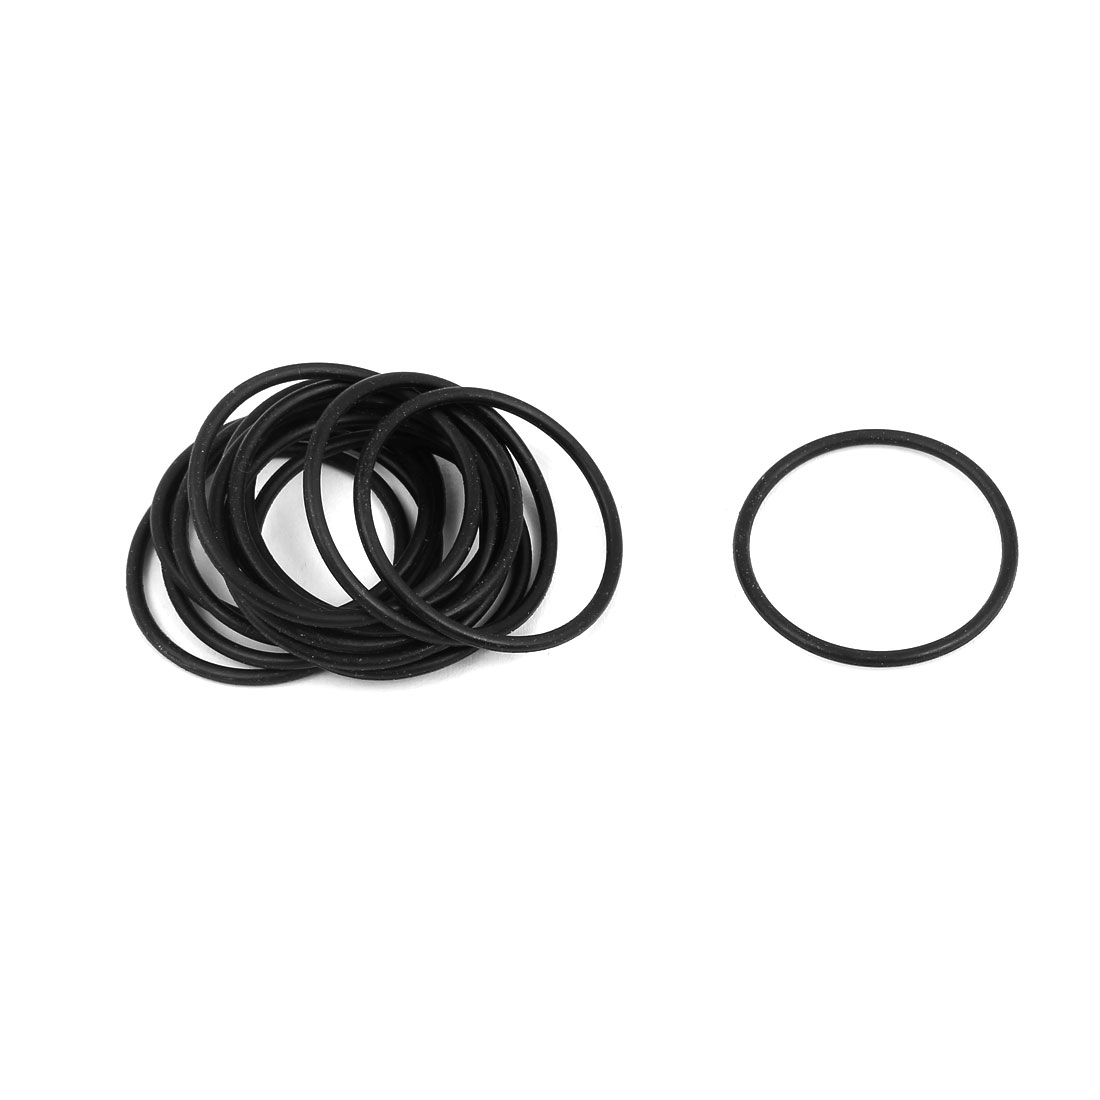 15 Pcs 26mm x 1.5mm Rubber O-rings NBR Heat Resistant Sealing Ring Grommets